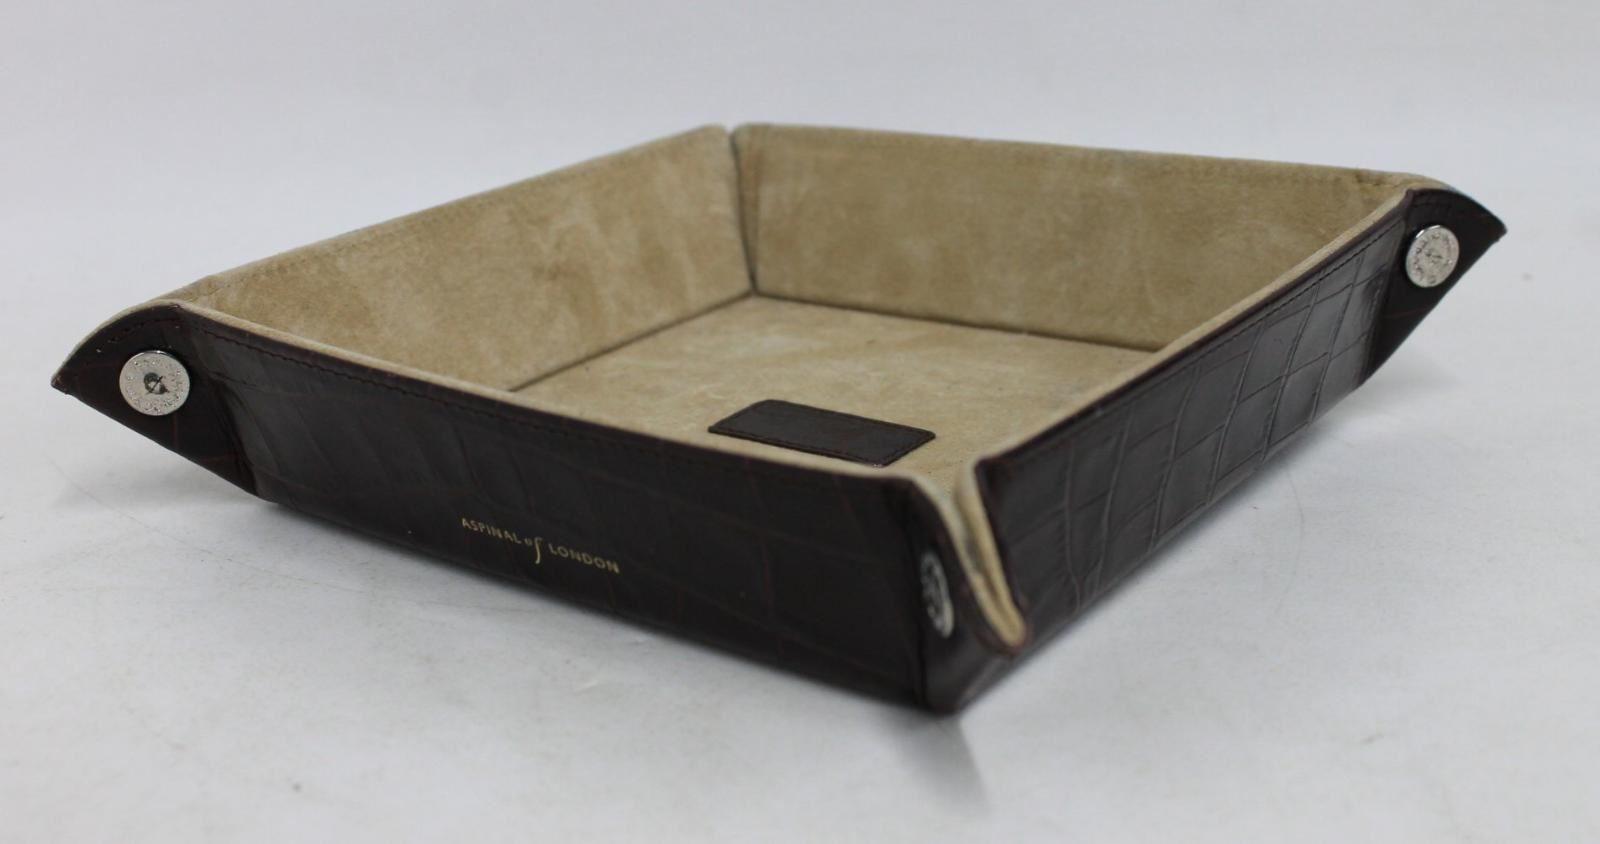 ASPINAL-OF-LONDON-Medium-Tidy-Tray-Mahogany-Croc-Print-Leather-Trinket-Holder